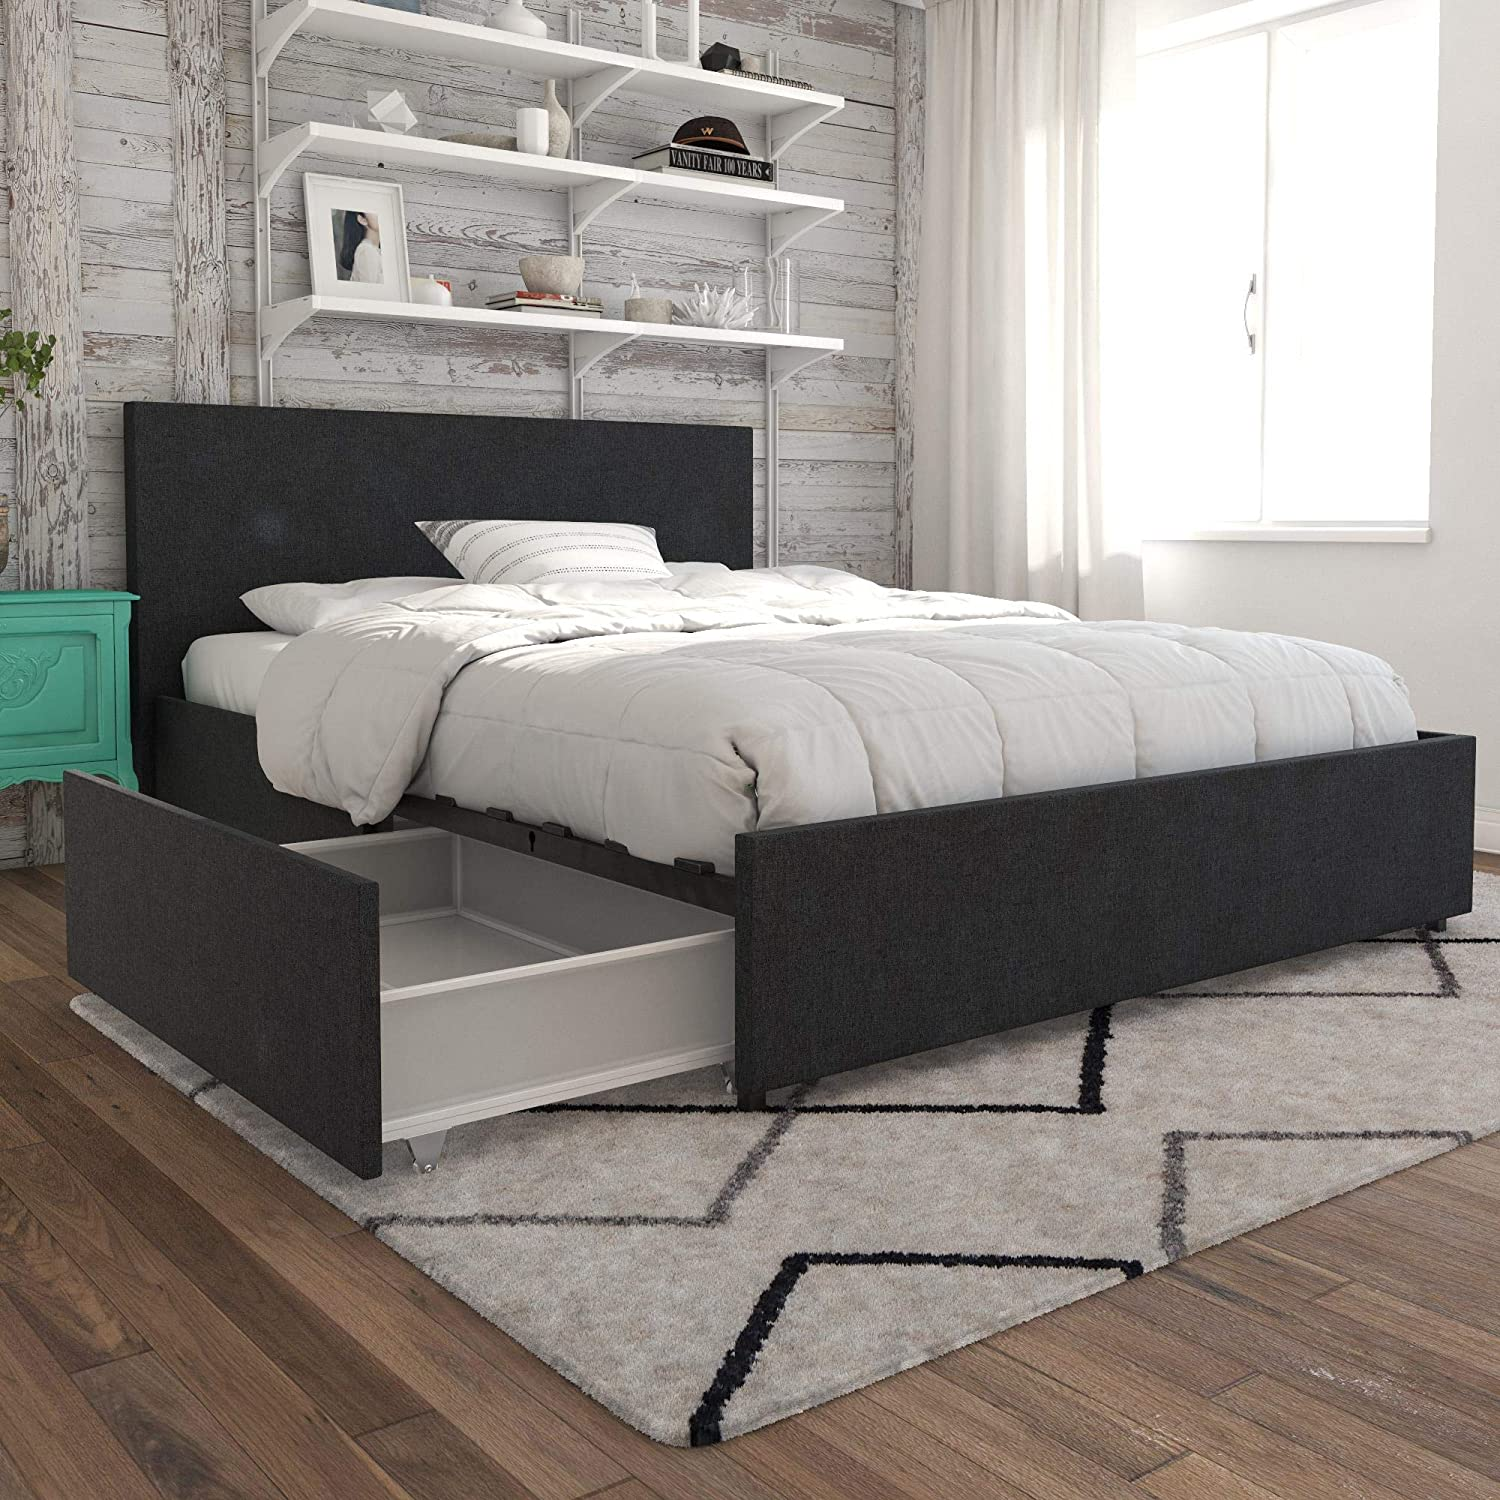 Novogratz 4296439N Kelly Bed with Storage, Queen, Dark Gray Linen